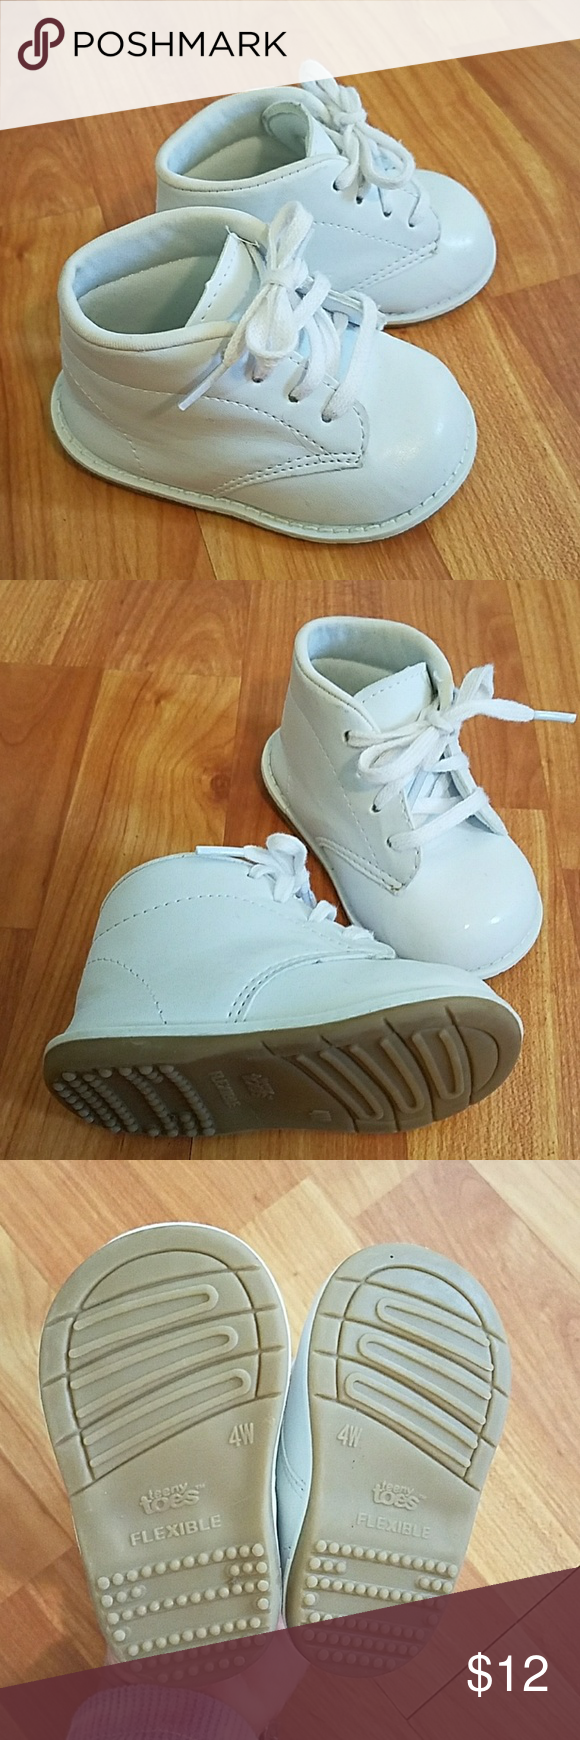 Teeny Toes White High Top Baby Shoes - Size 4W